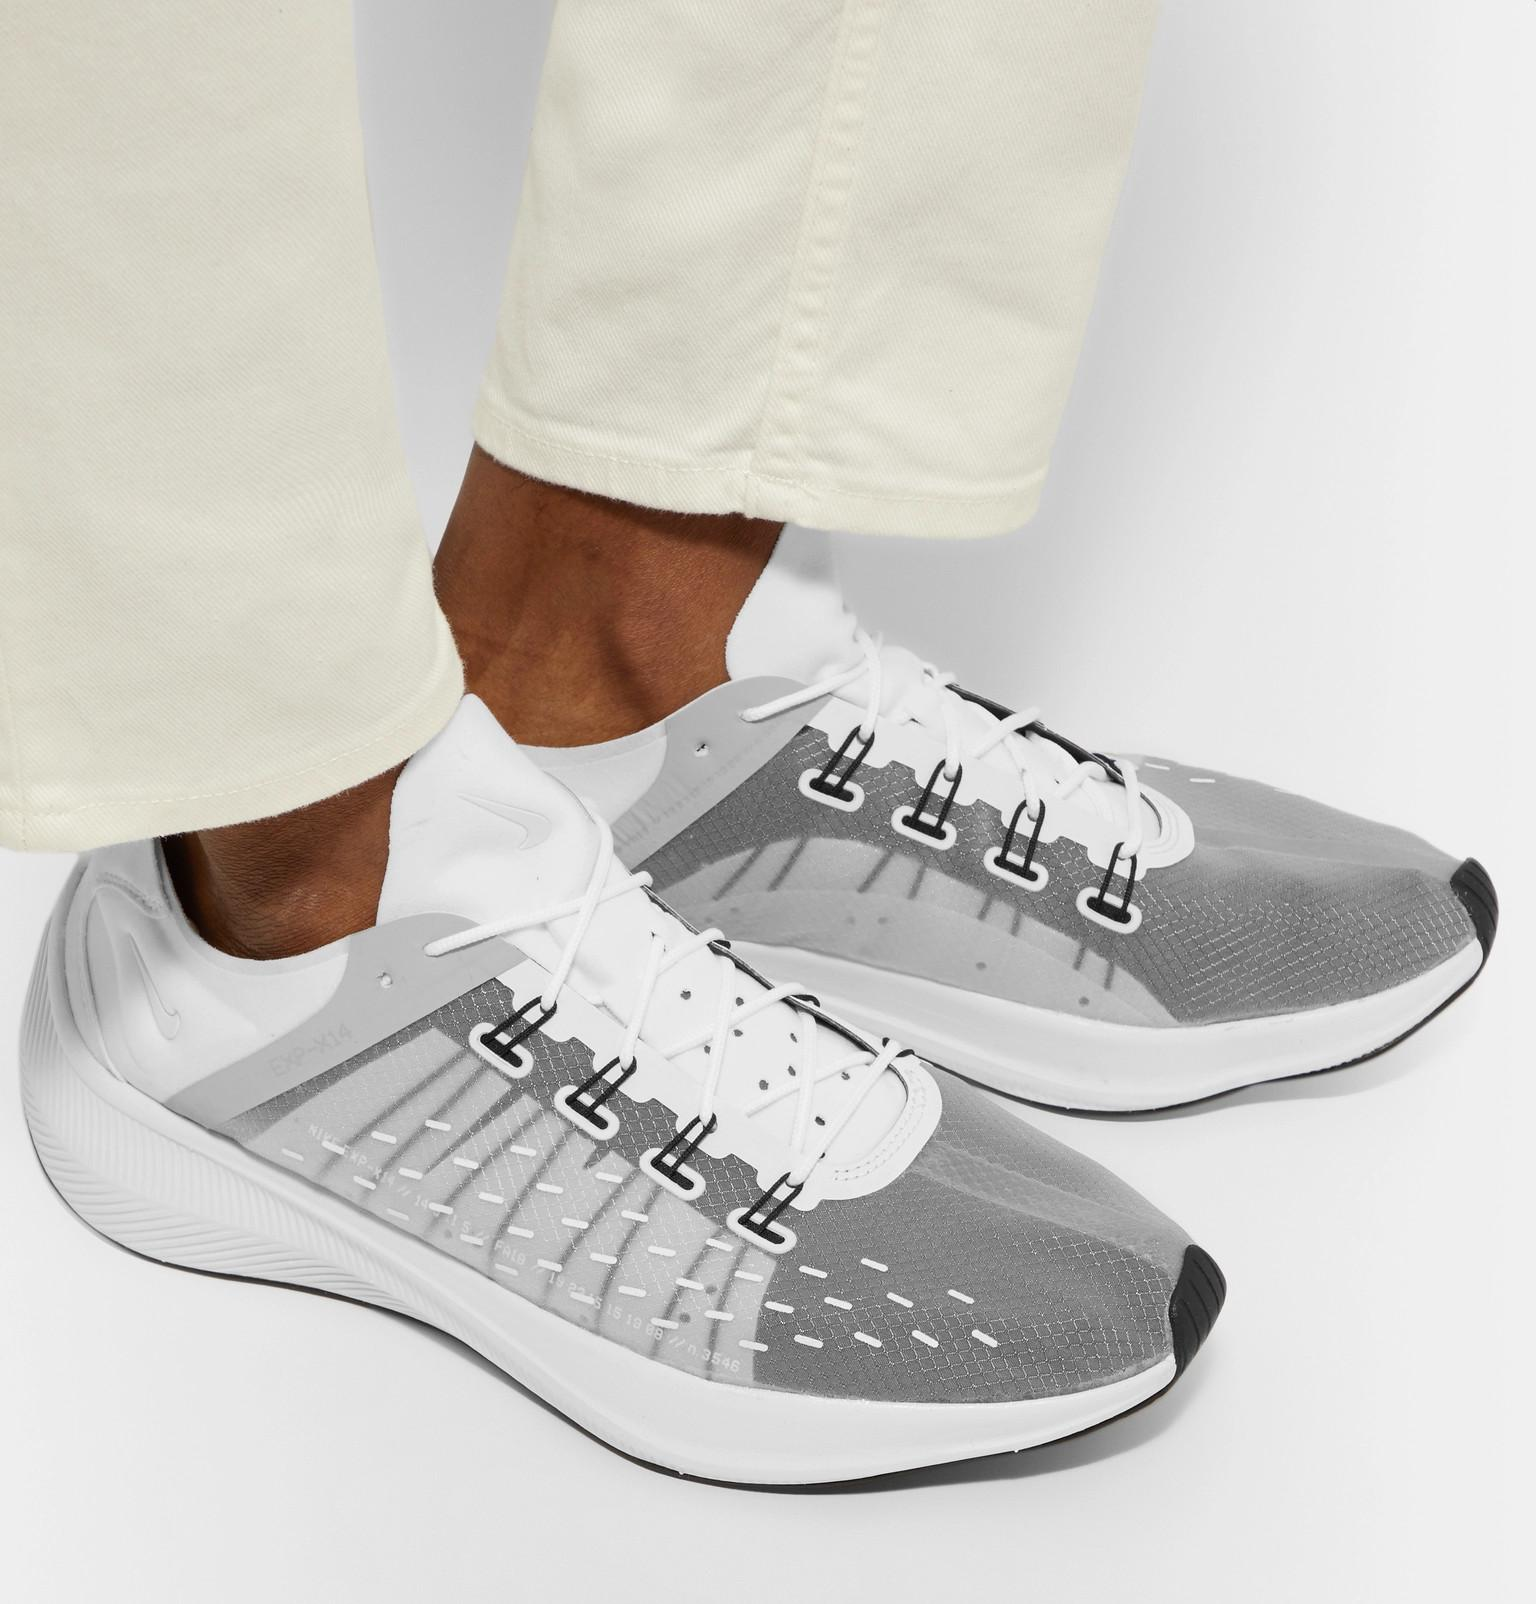 sale retailer 6a458 3a19b Nike Future Fast Racer Exp-x14 Sneakers in White for Men - Lyst